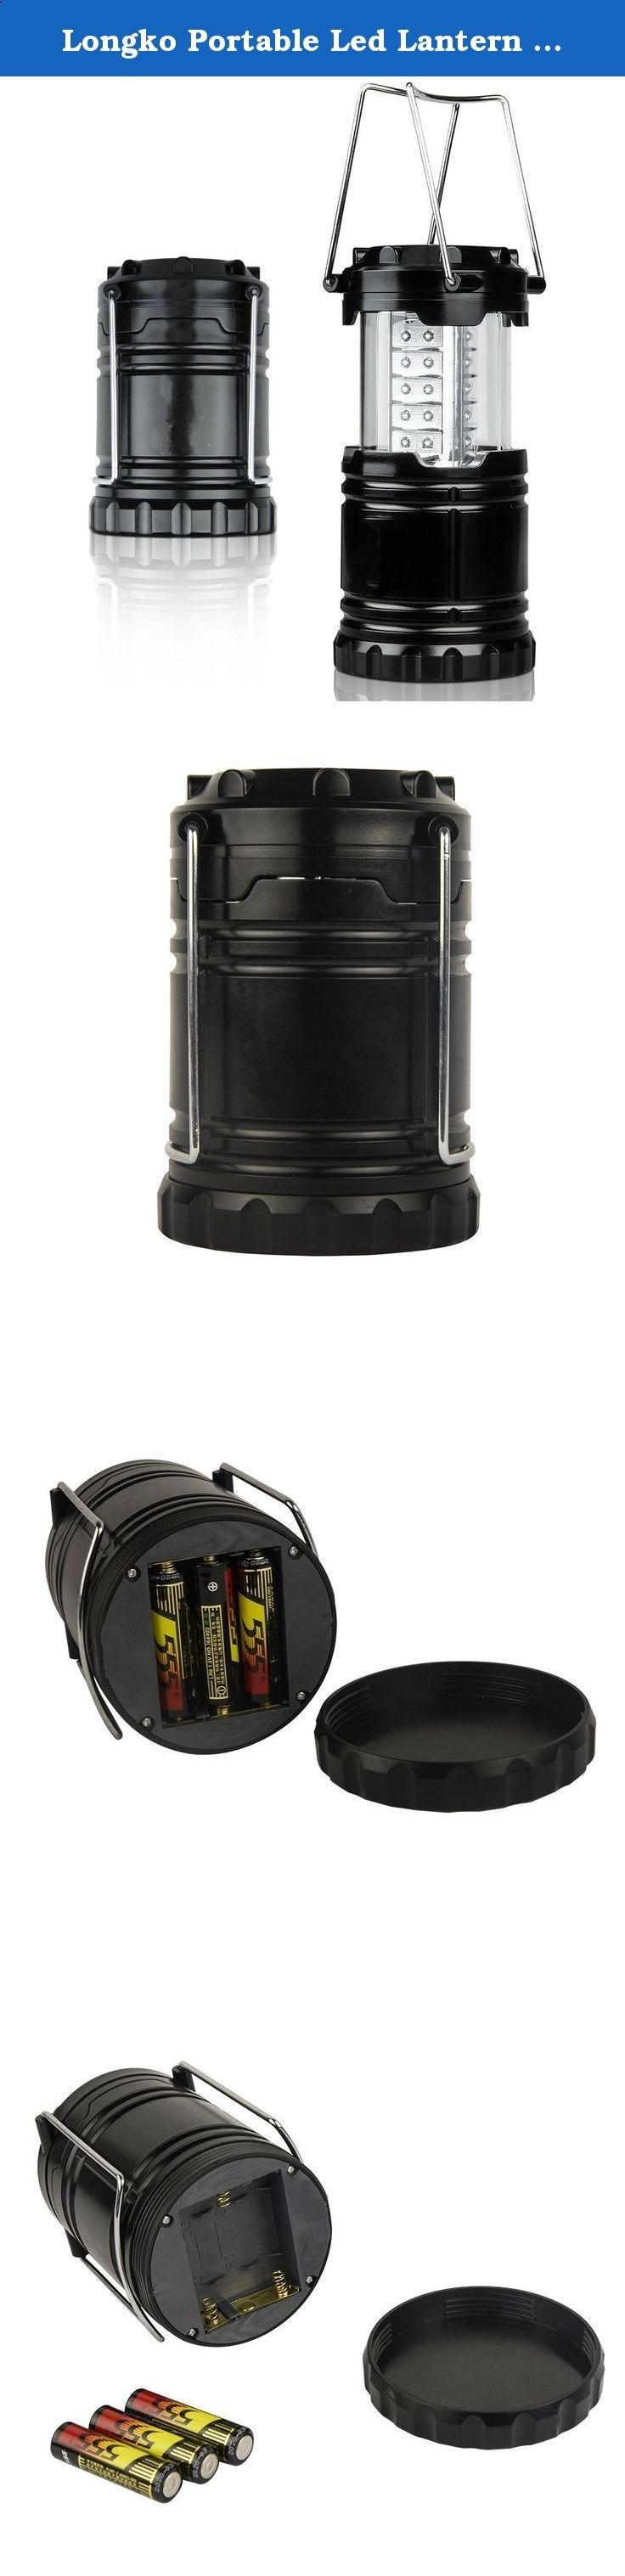 Longko Portable Led Lantern Flashlights Camping Lantern for Awning Camping Hiking Fishing Emergencies Hurricanes Outages (30 Super White LED Chips) - Battery NOT Include. No switch: Longko camping lantern is designed for camping hiking fishing emergencies hurricanes and outages. Unlike traditional unwieldy camp lanterns that need a power button or switch to turn on, this minimalist camping lantern with an expand-and-contract design will light up once expanded. No more fumbling for the ...